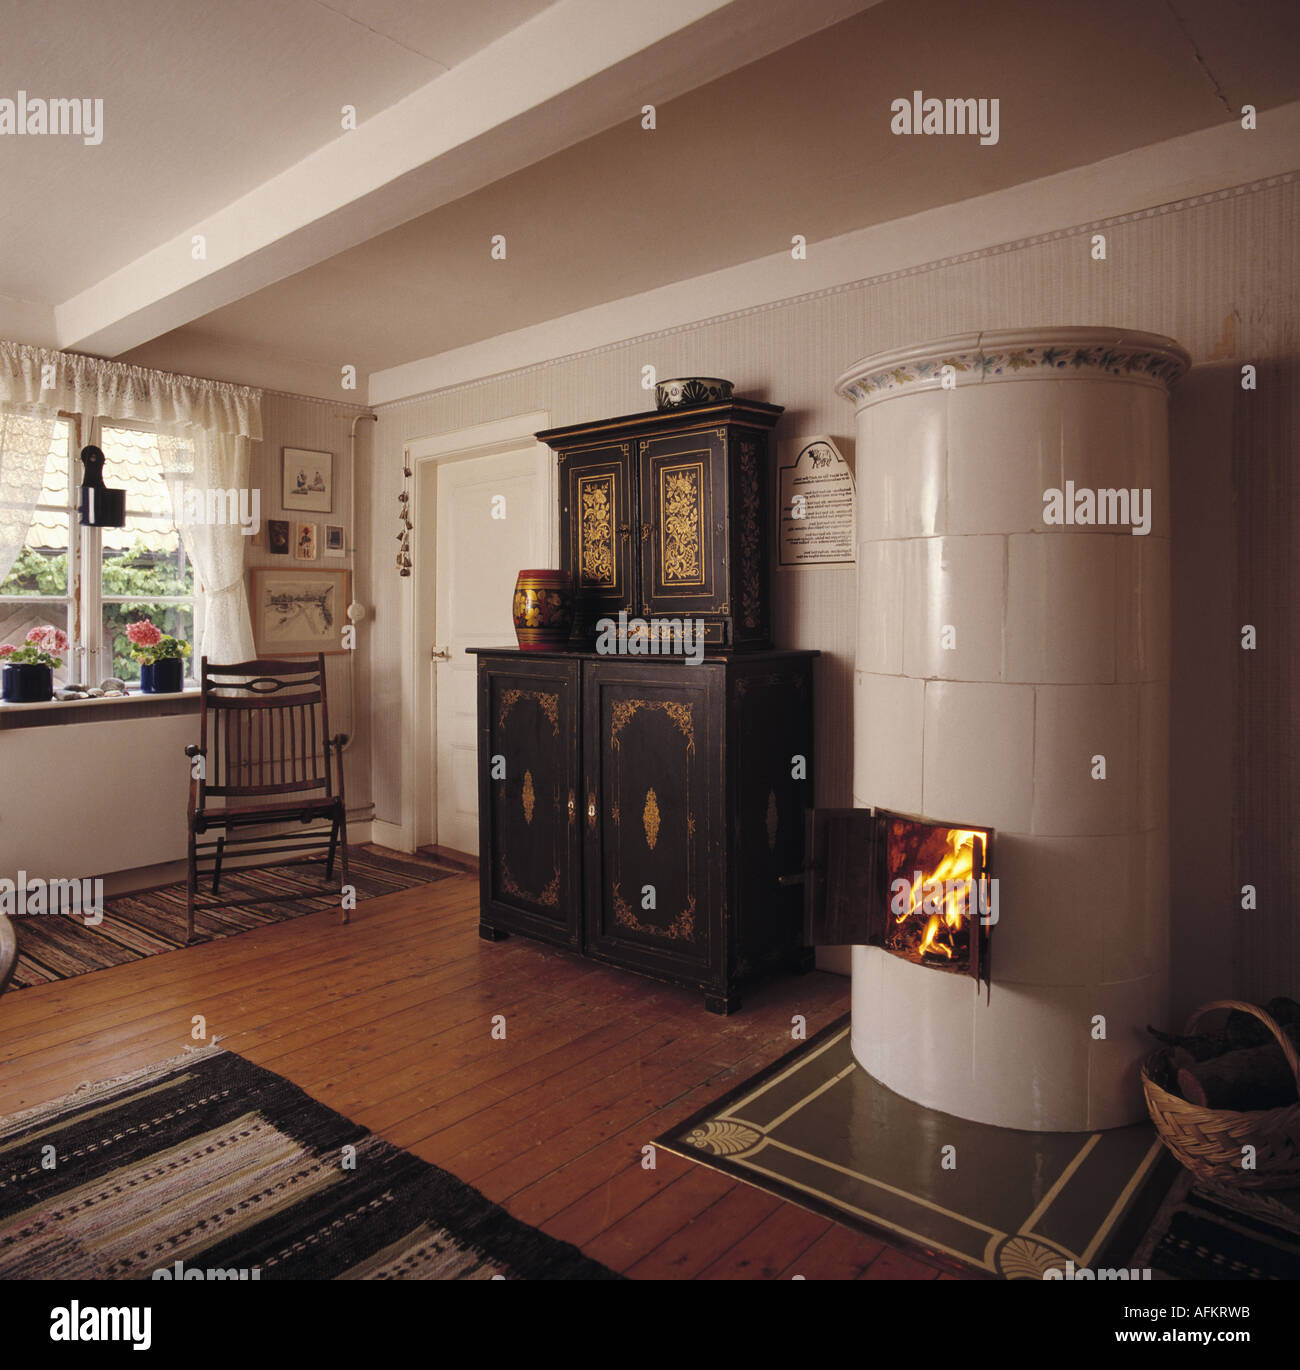 Tall white ceramic stove and antique painted cupboard in rustic ...